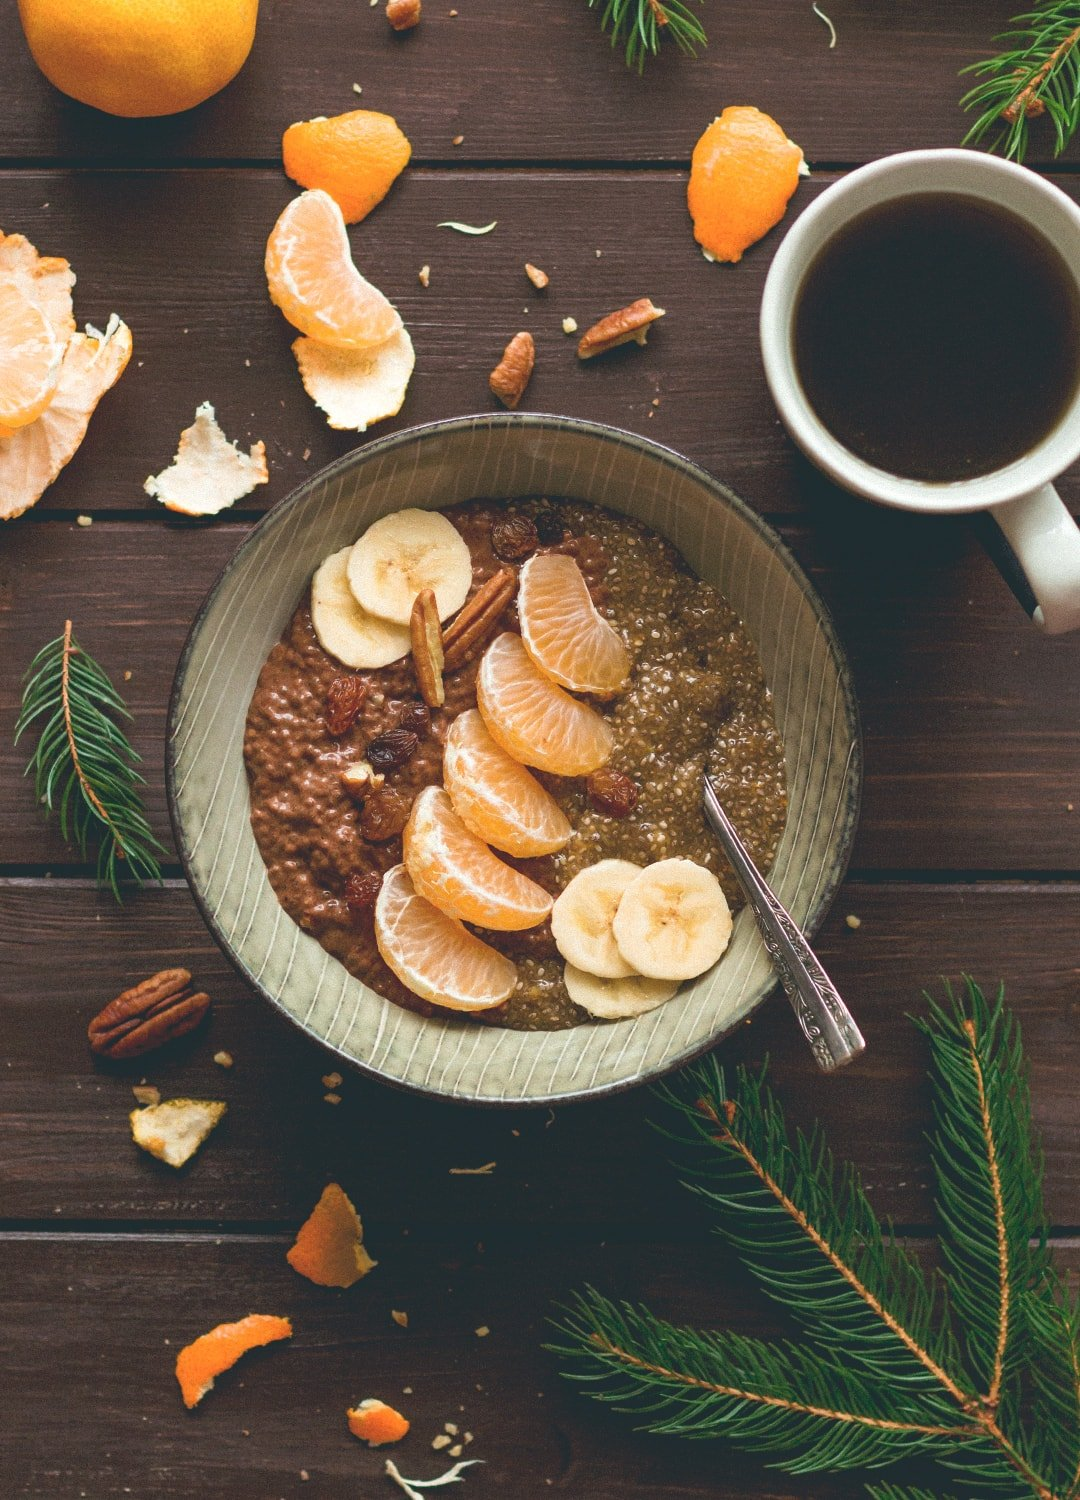 12 Christmas Recipes You Need to Make This Year: Tangerine Chocolate Chia Pudding - delicious refreshing, chocolatey breakfast you will love! Vegan, gluten-free and easy to make the night before so you can just grab it and go in the morning! | thehealthfulideas.com